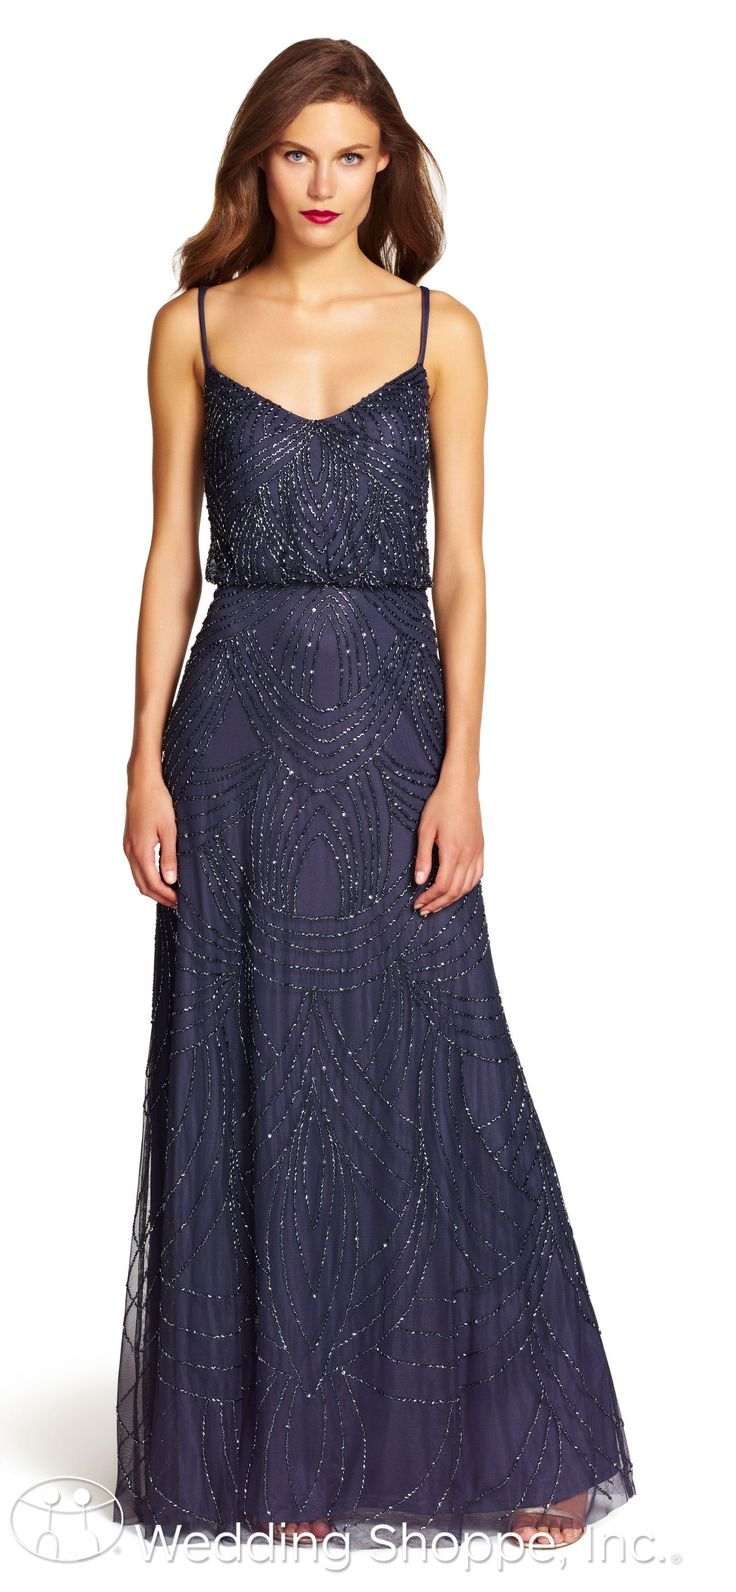 Pinterest flapper wedding dresses 1920s style and adrianna papell - A Dazzling Navy Beaded Bridesmaid Dress From Adrianna Papell